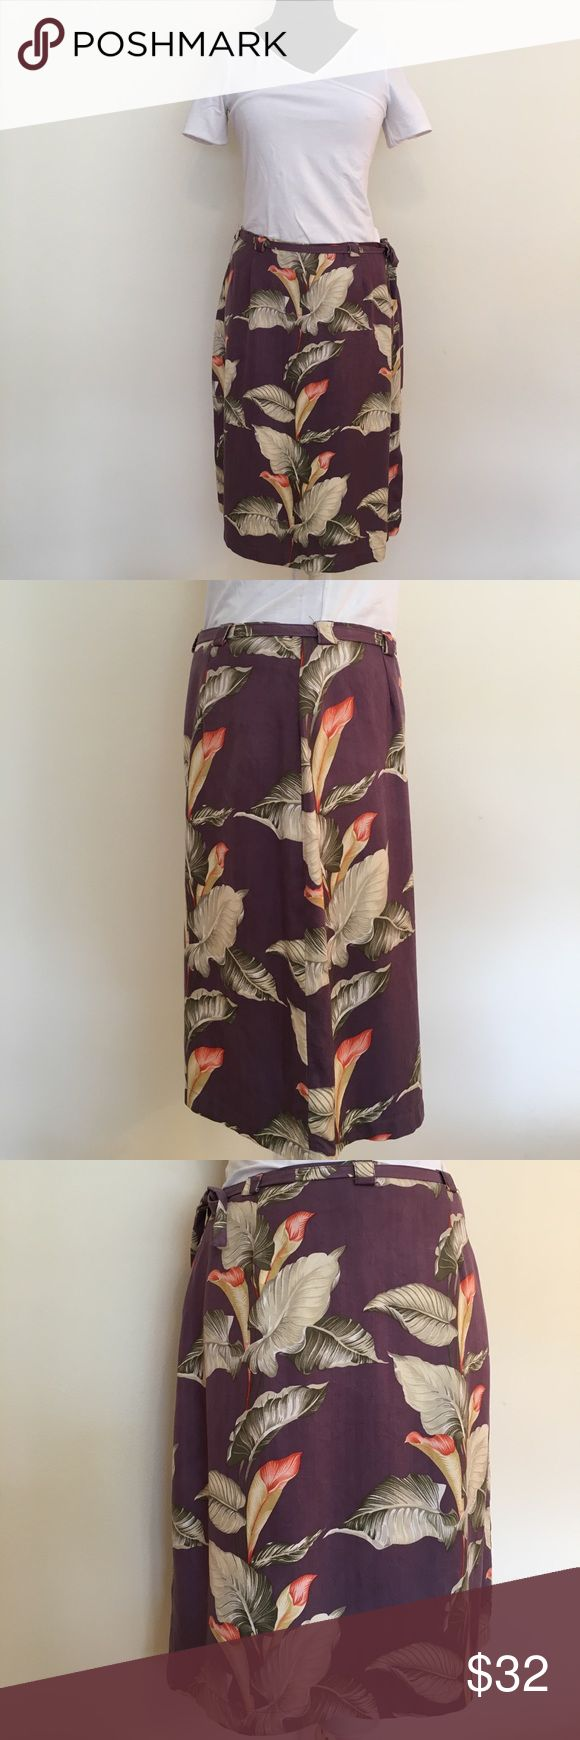 """Tommy Bahama washed silk skirt Tommy Bahama washed silk skirt in tropical print with purple background. Measurements: length 21"""", waist 30"""", hip 42"""". Hidden side zip. fabric belt and side slit. Tommy Bahama Skirts Midi"""